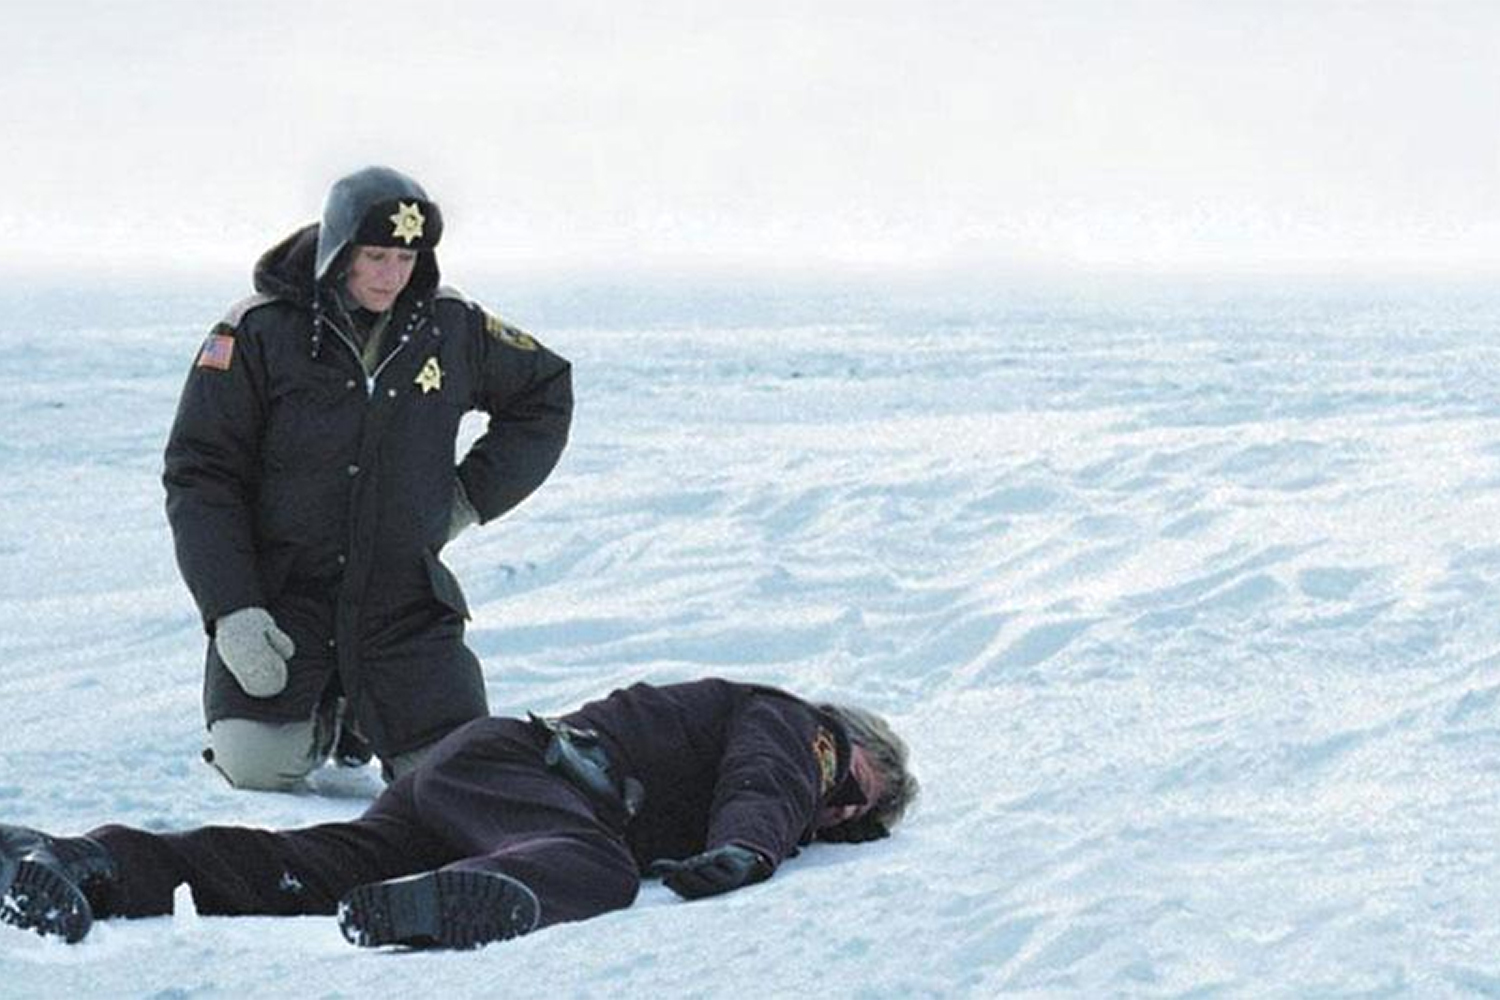 Bangkok Screening Room celebrates Fargo's 25th anniversary